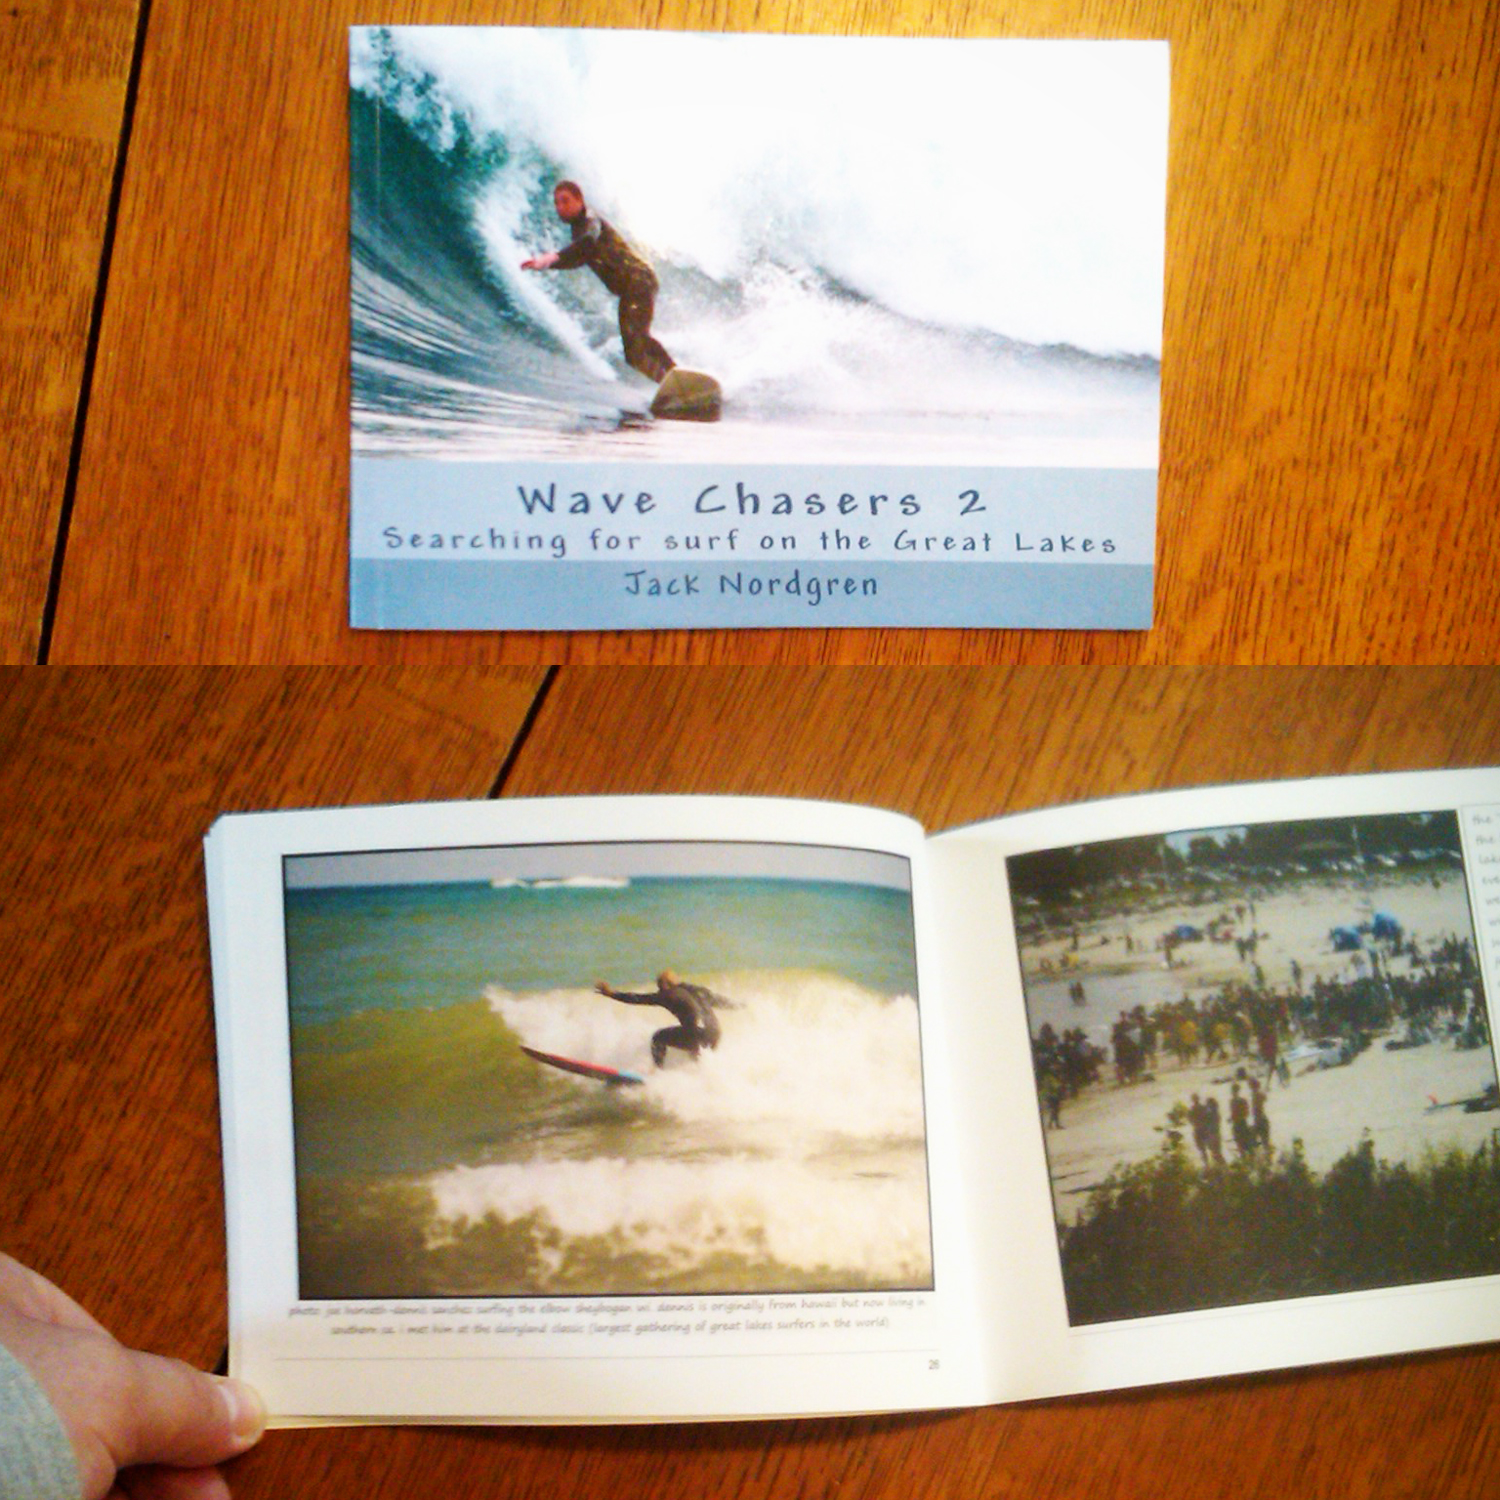 Wave chasers 2 book by jack nordgen